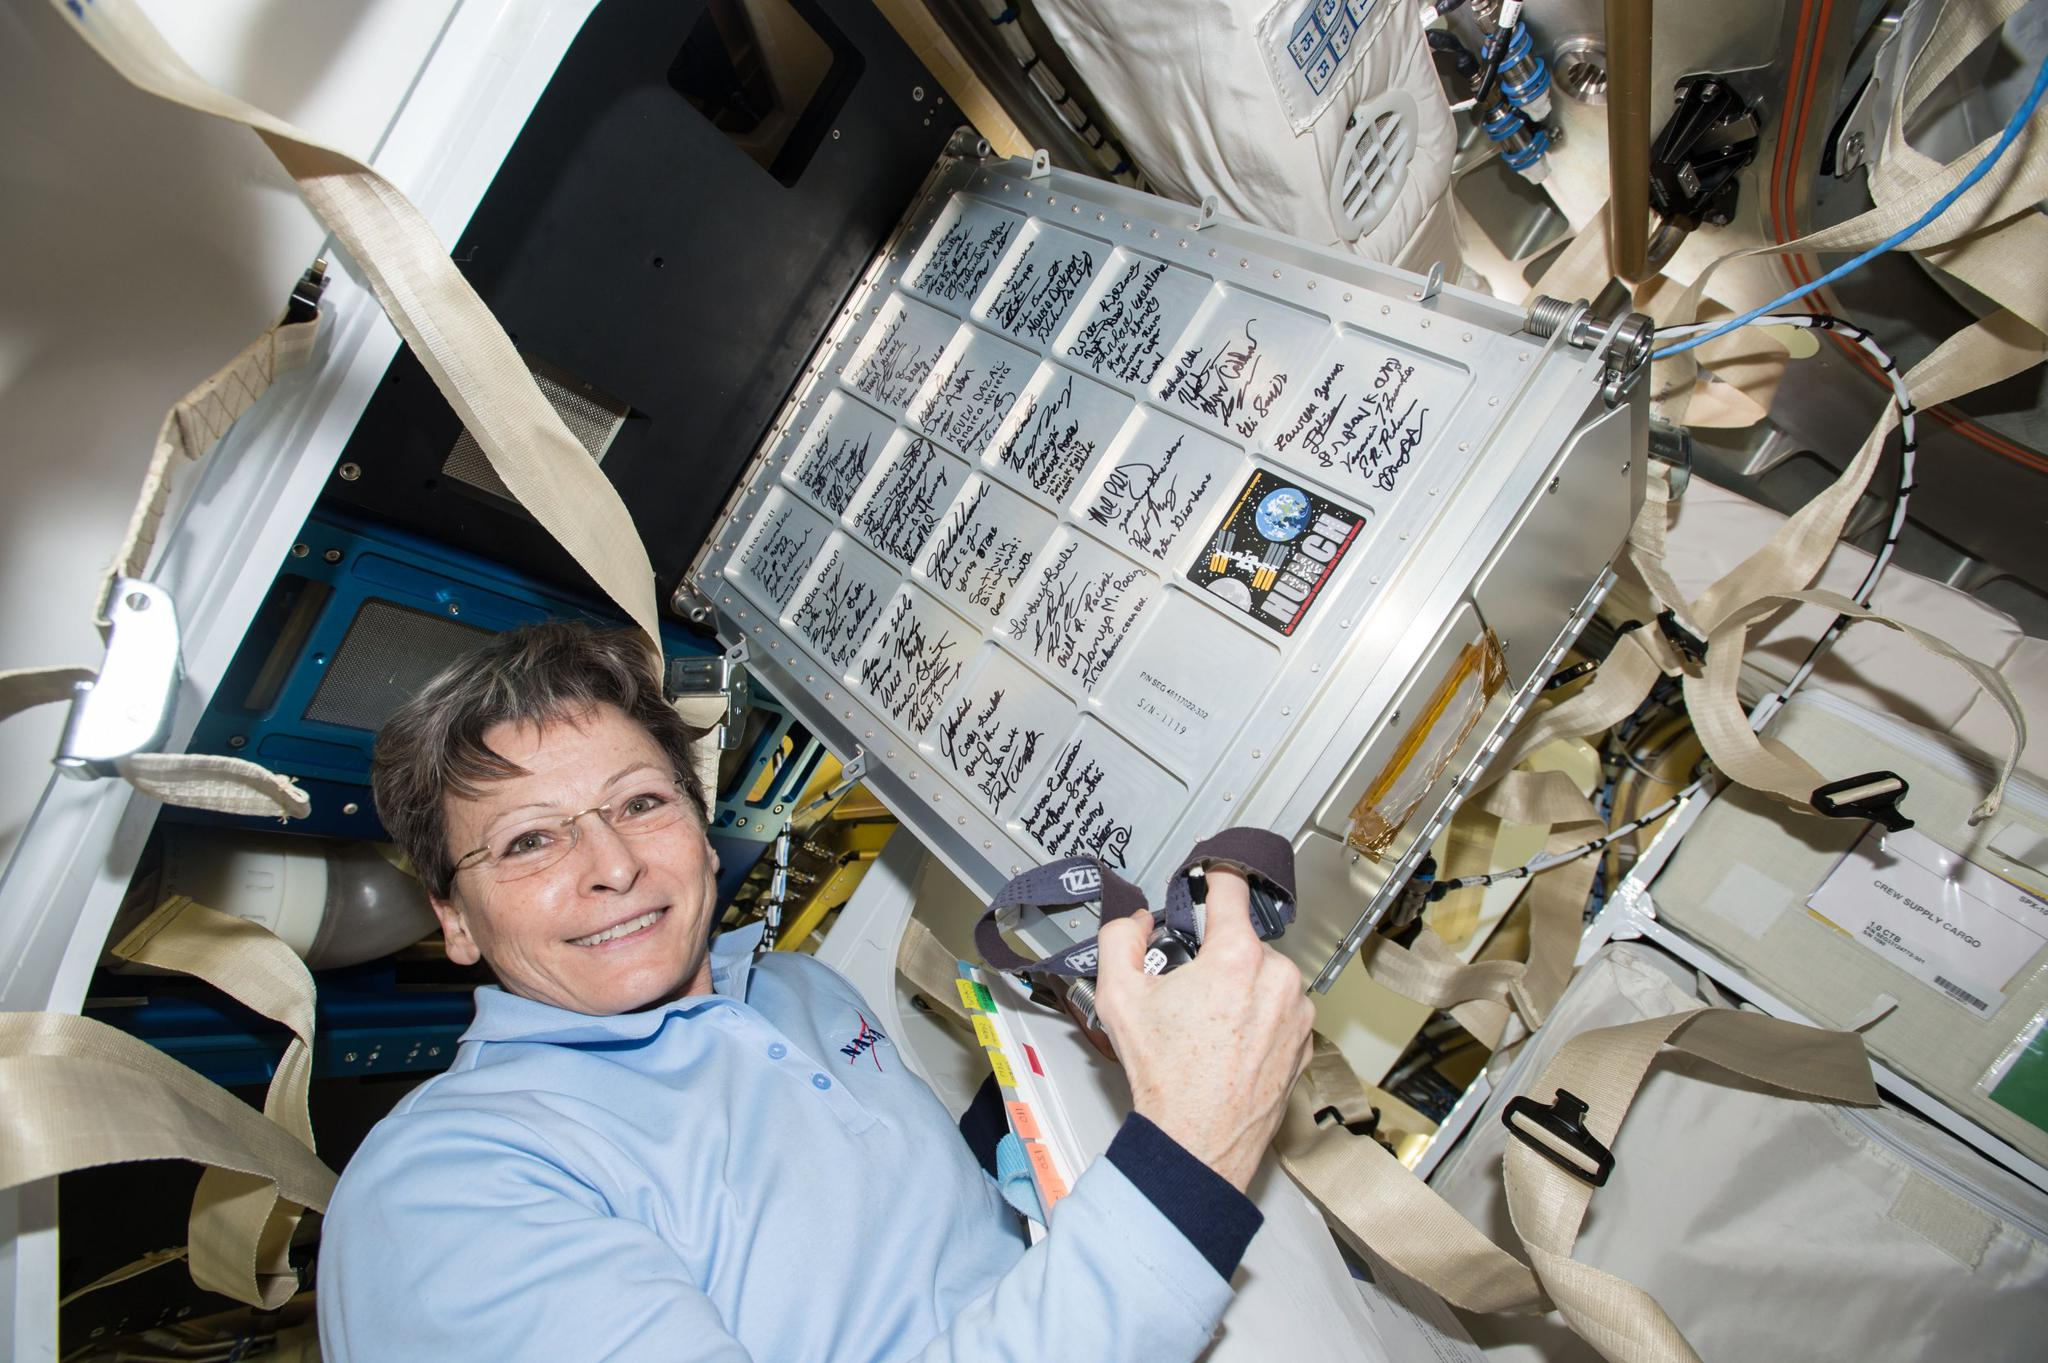 NASA astronaut Peggy Whitson unloads a storage locker that was built as part of the NASA High School Students United with NASA to Create Hardware (HUNCH) program, on the International Space Station on March 9. Students in the HUNCH program receive valuable experience creating goods for NASA, from hardware to meals for astronauts, while NASA receives the creativity of the high school students.